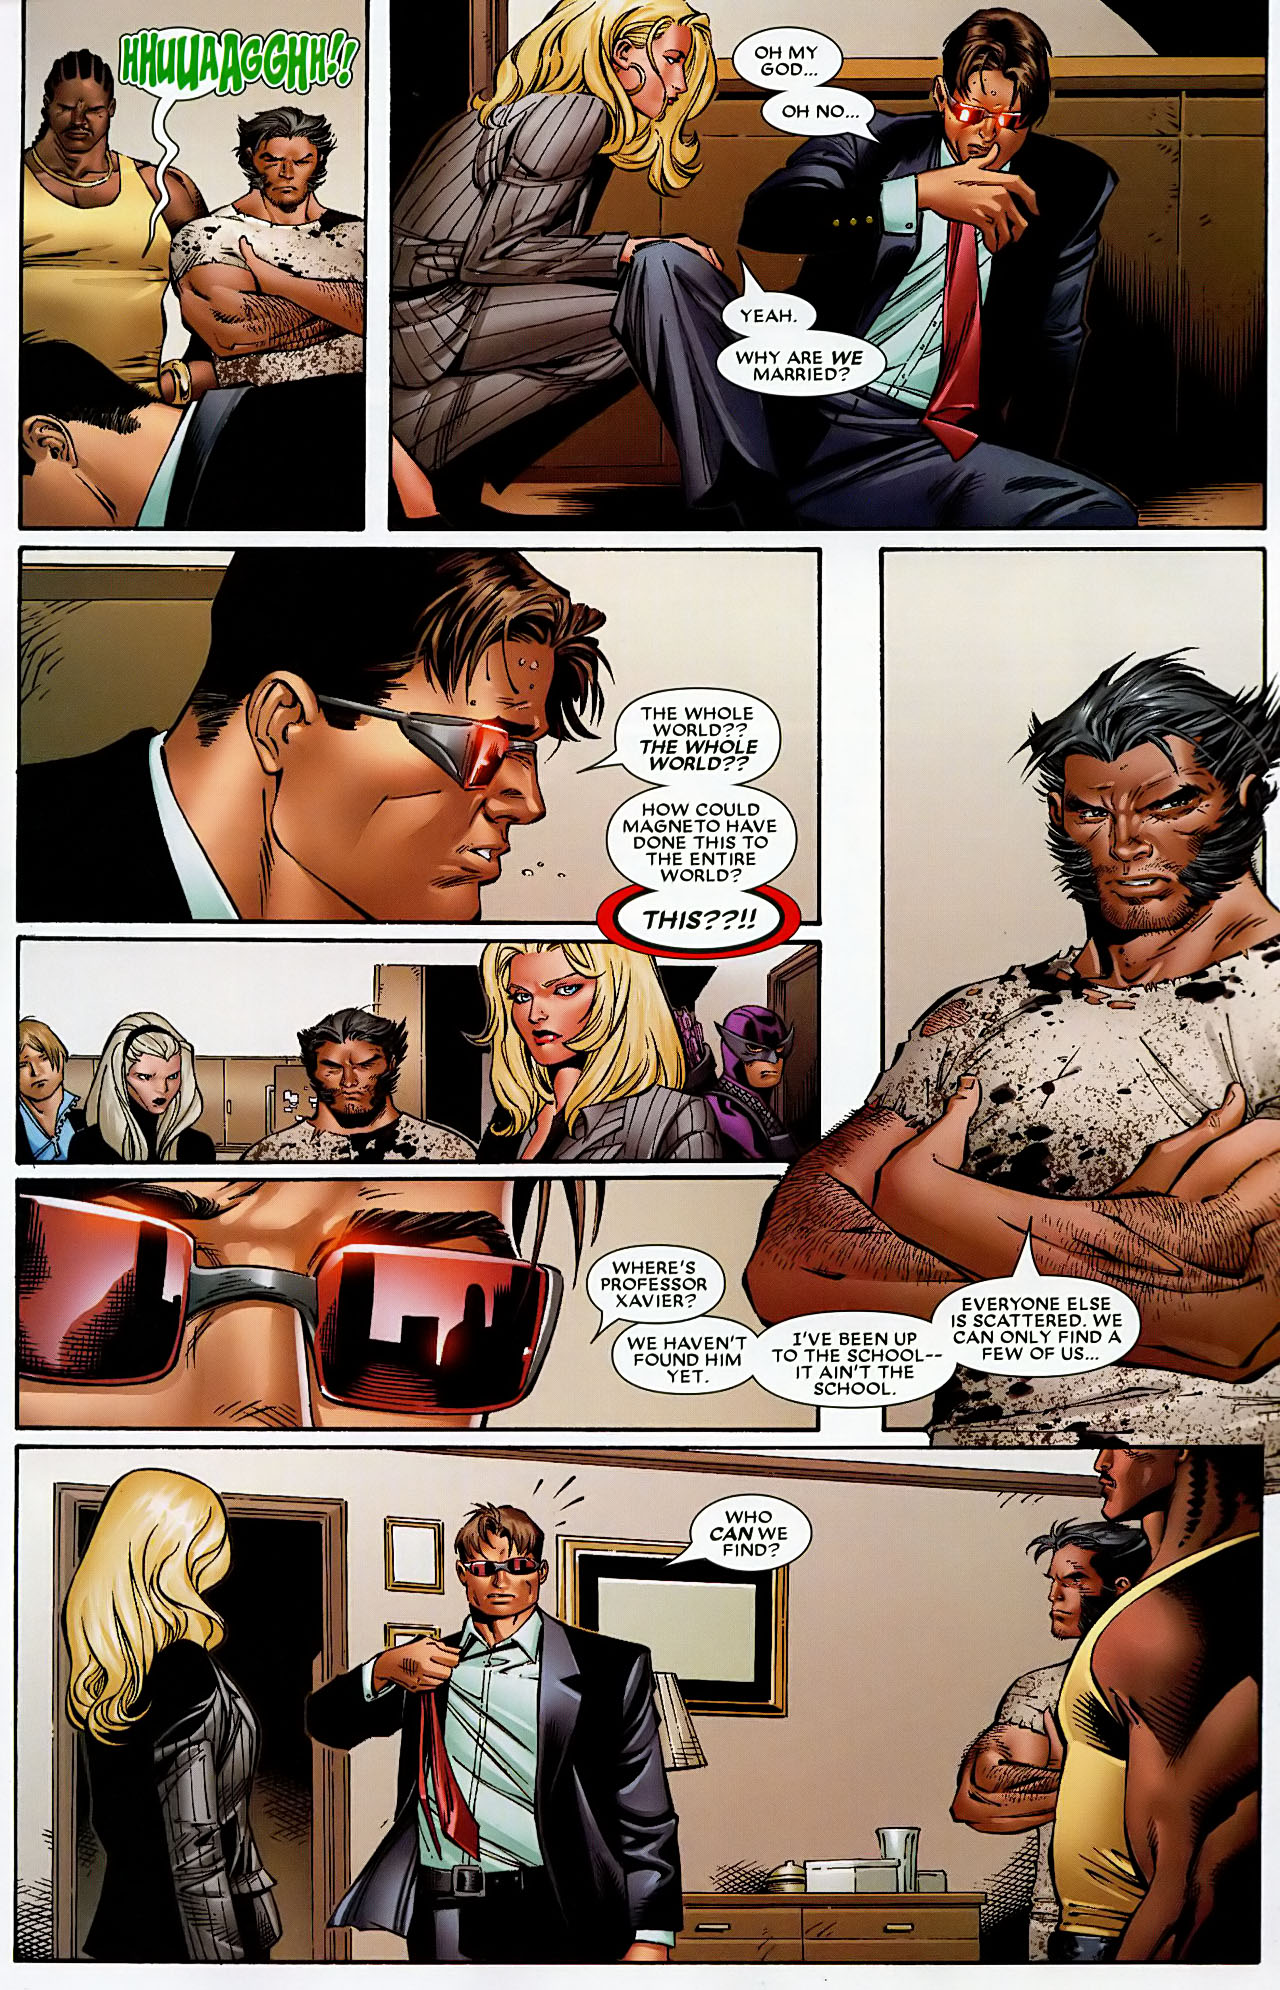 House of M 05 page 06.jpg